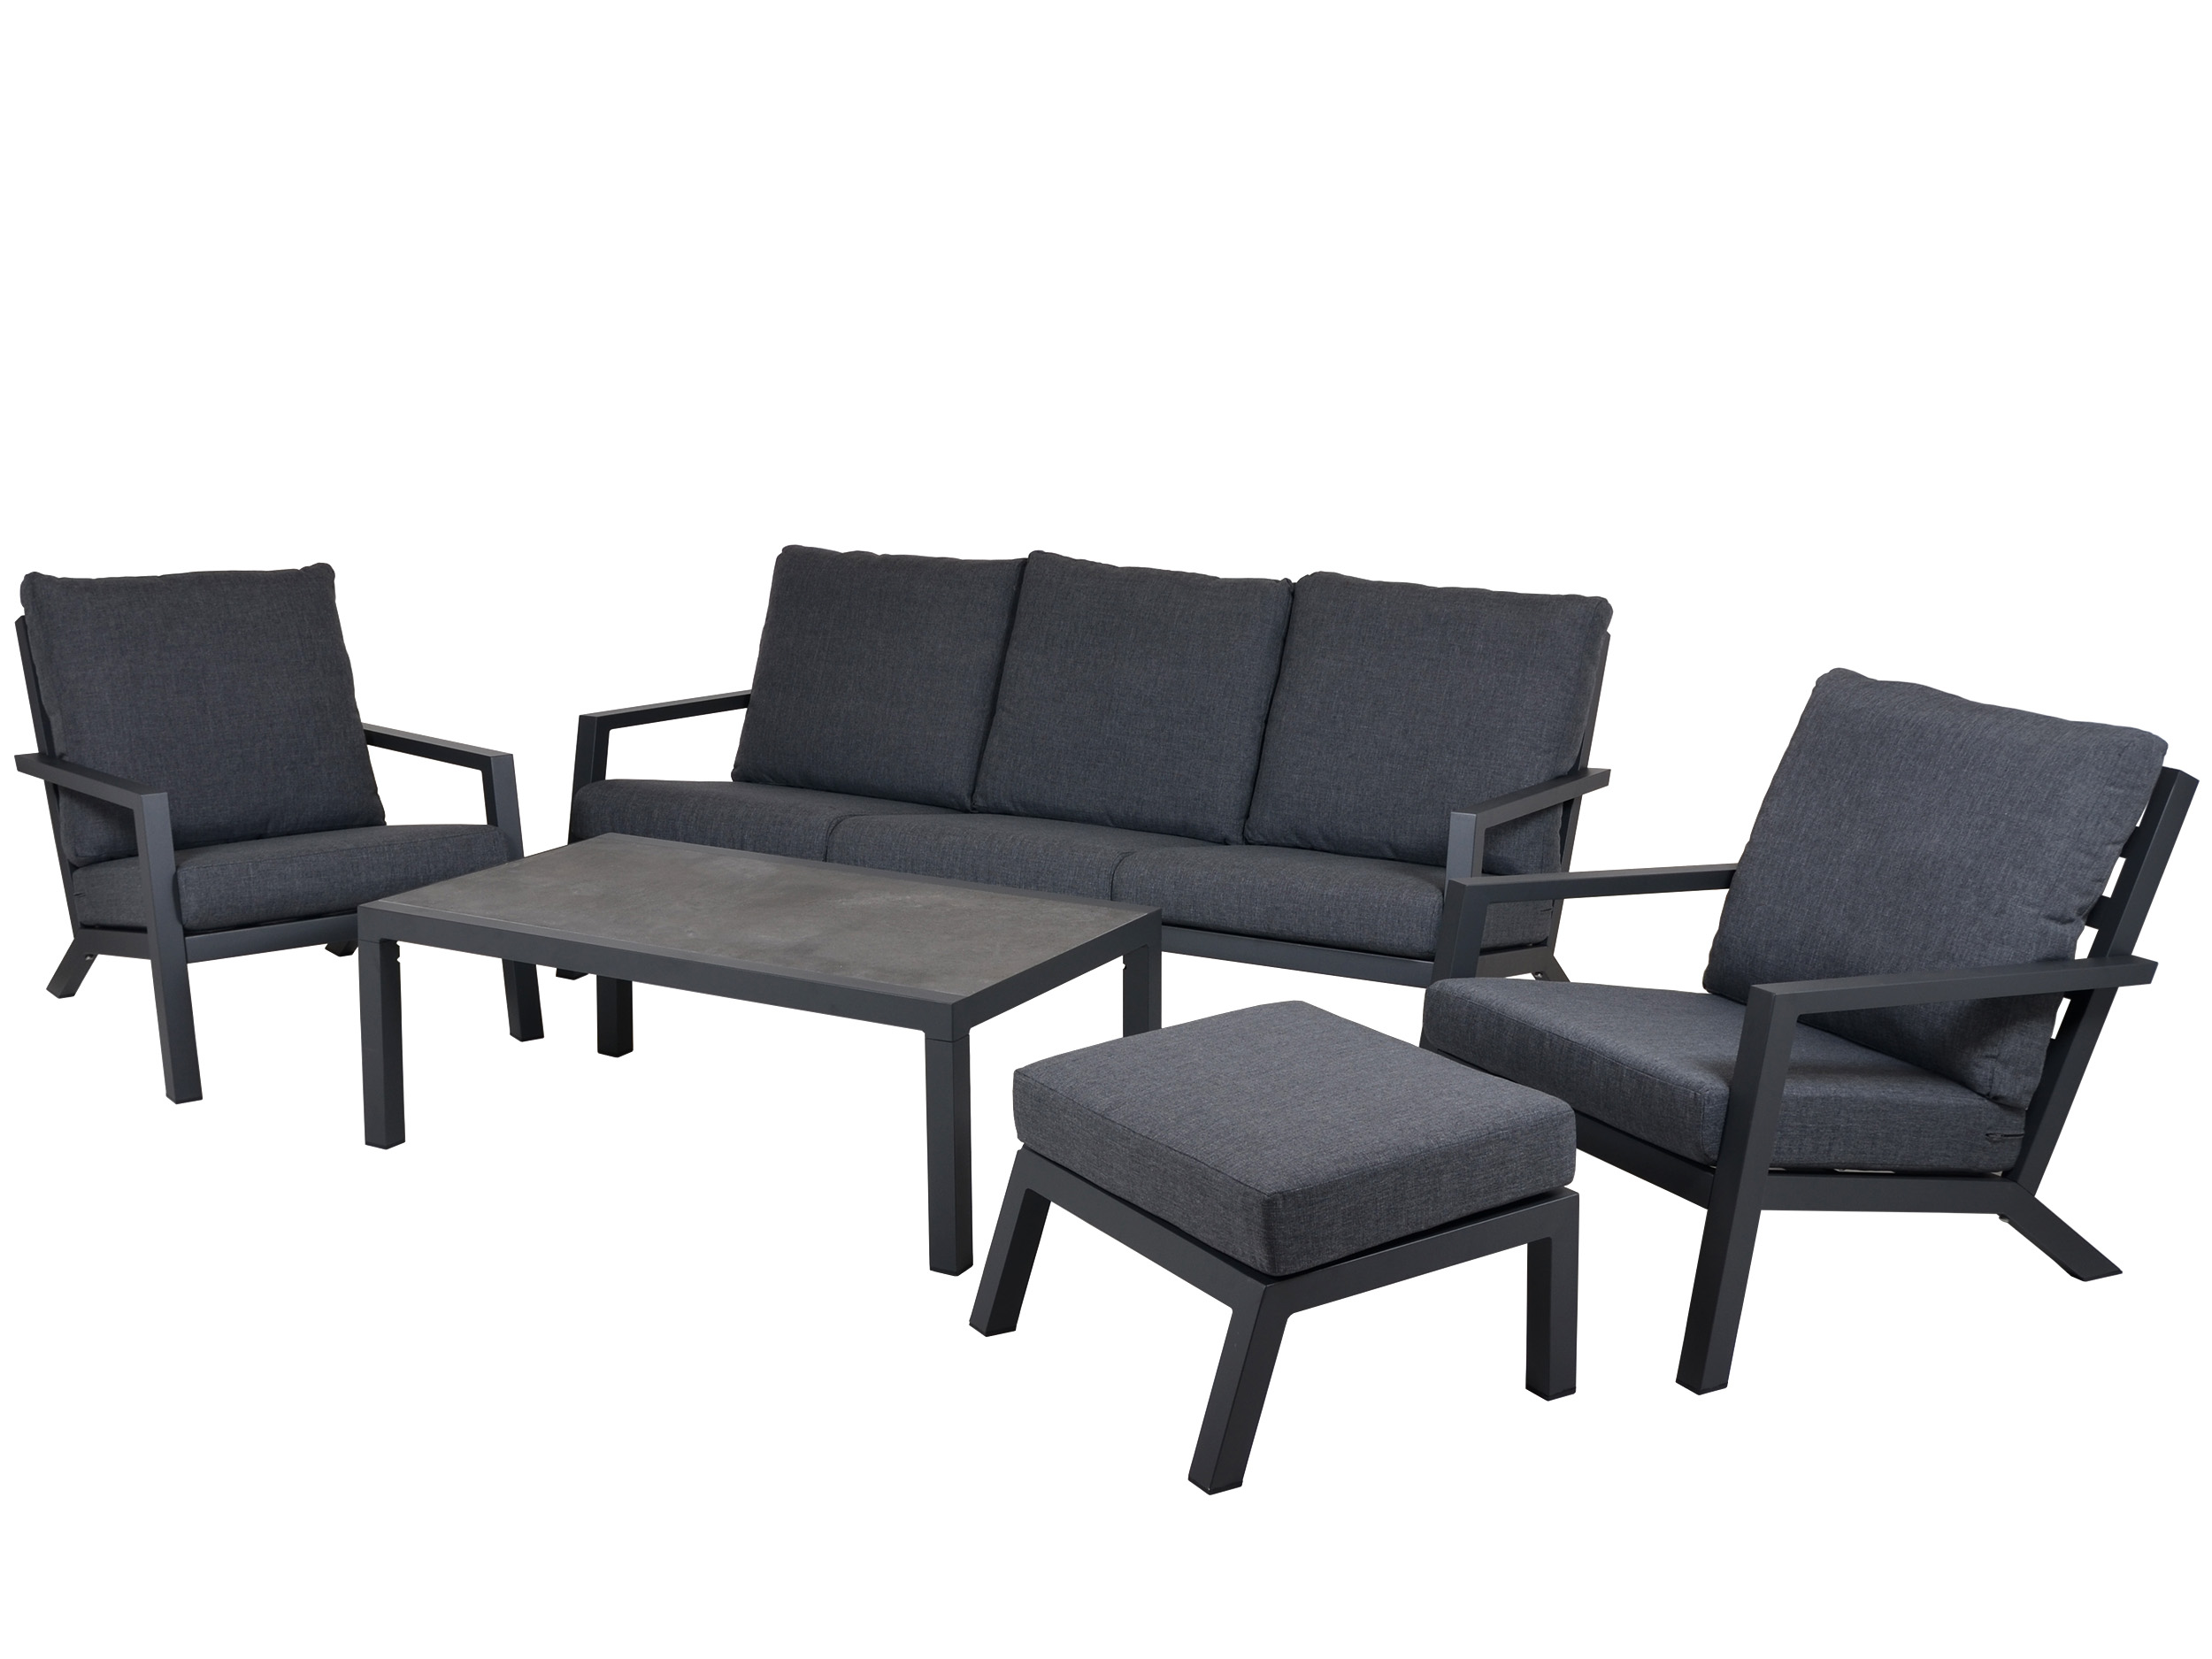 Aluminium garten lounge set 5 teilig gartenm bel l nse for Lounge sessel holz outdoor